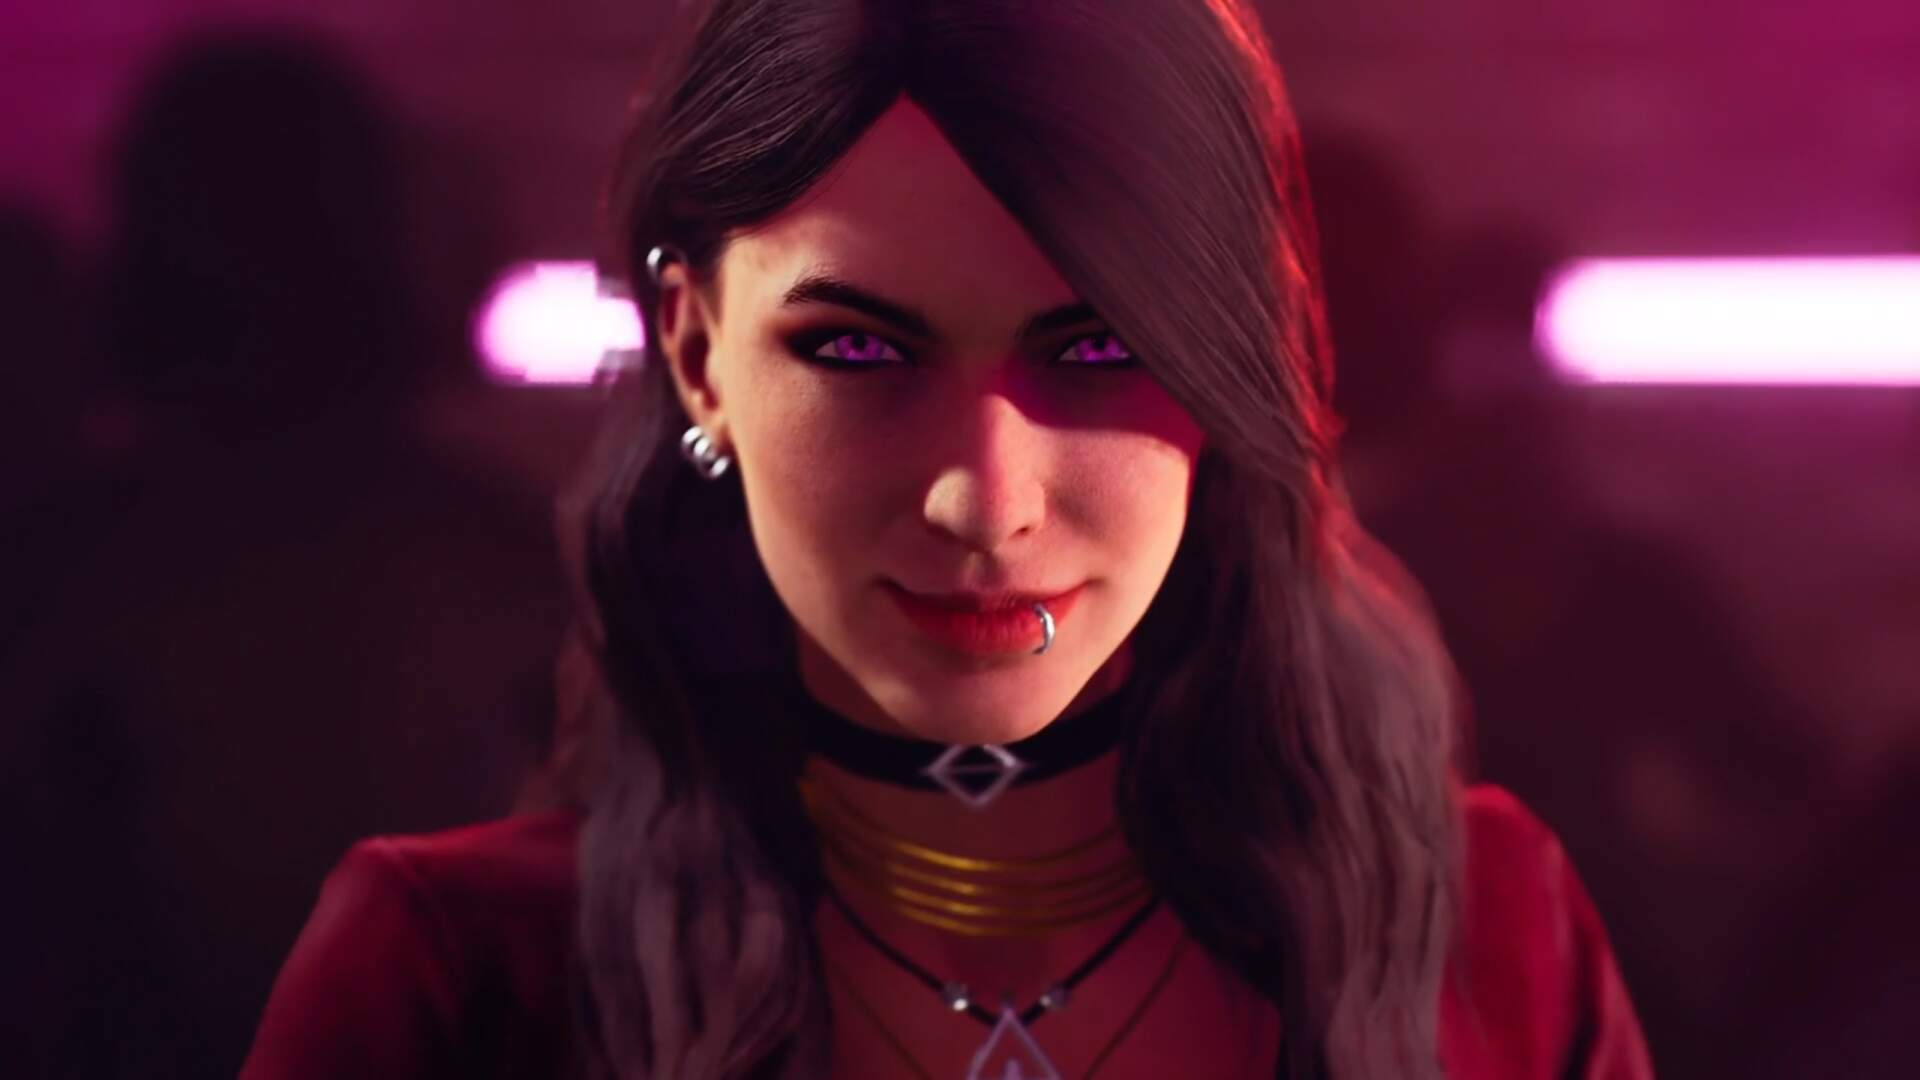 New Vampire: The Masquerade - Bloodlines 2 Trailer Shows It's Still Got Some Dance Moves